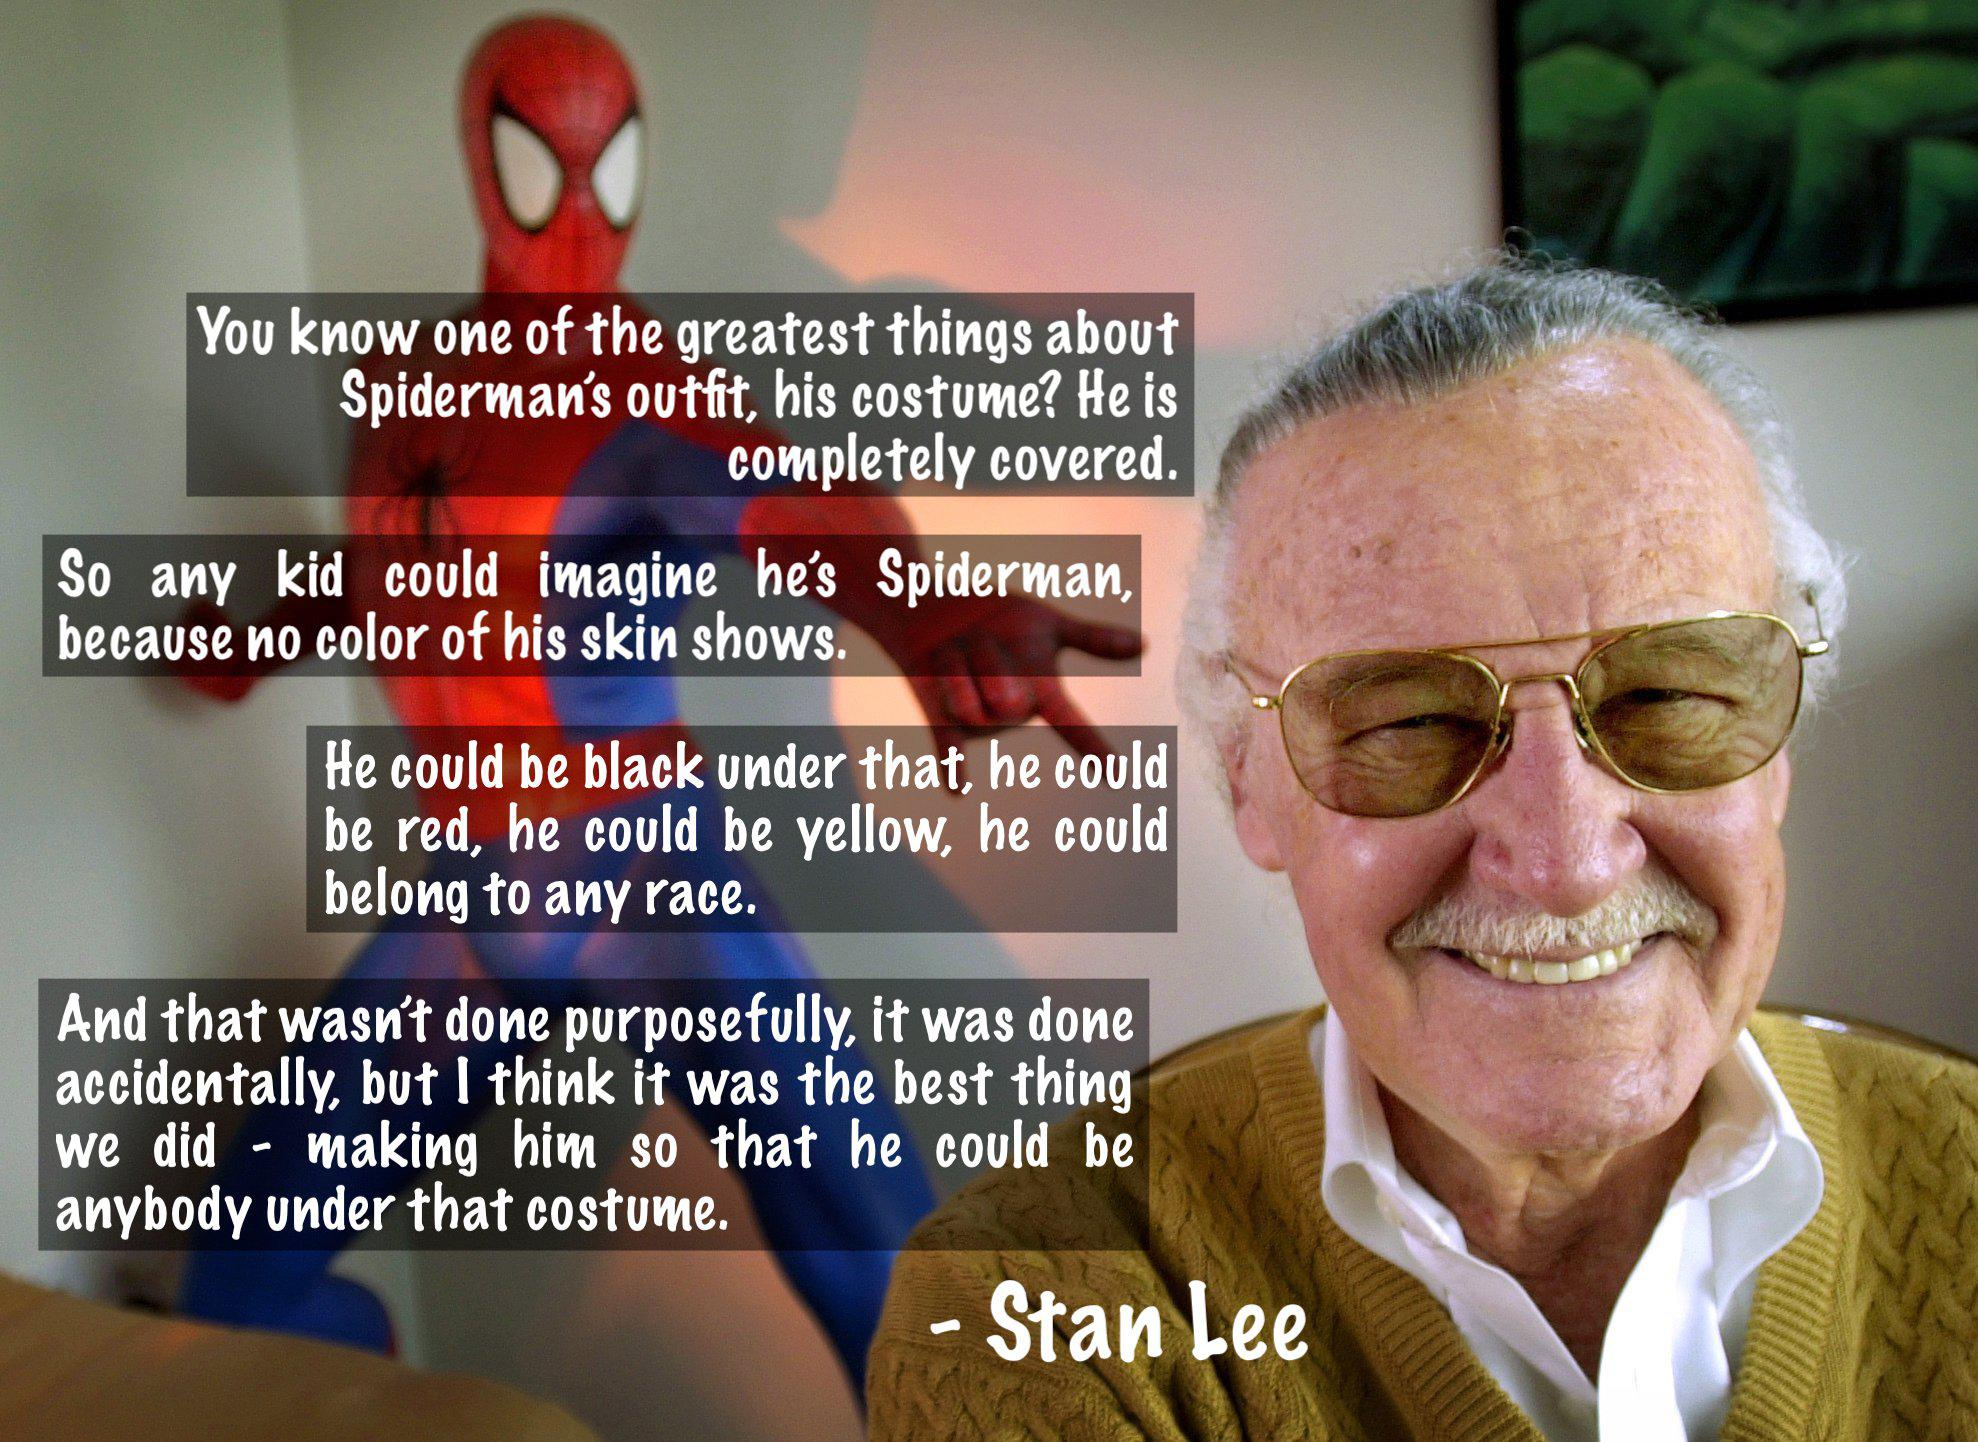 """You know one of the greatest things about Spiderman's outfit? He is completely covered, so any kid could imagine he's Spiderman."" – Stan Lee [1978×1442]"